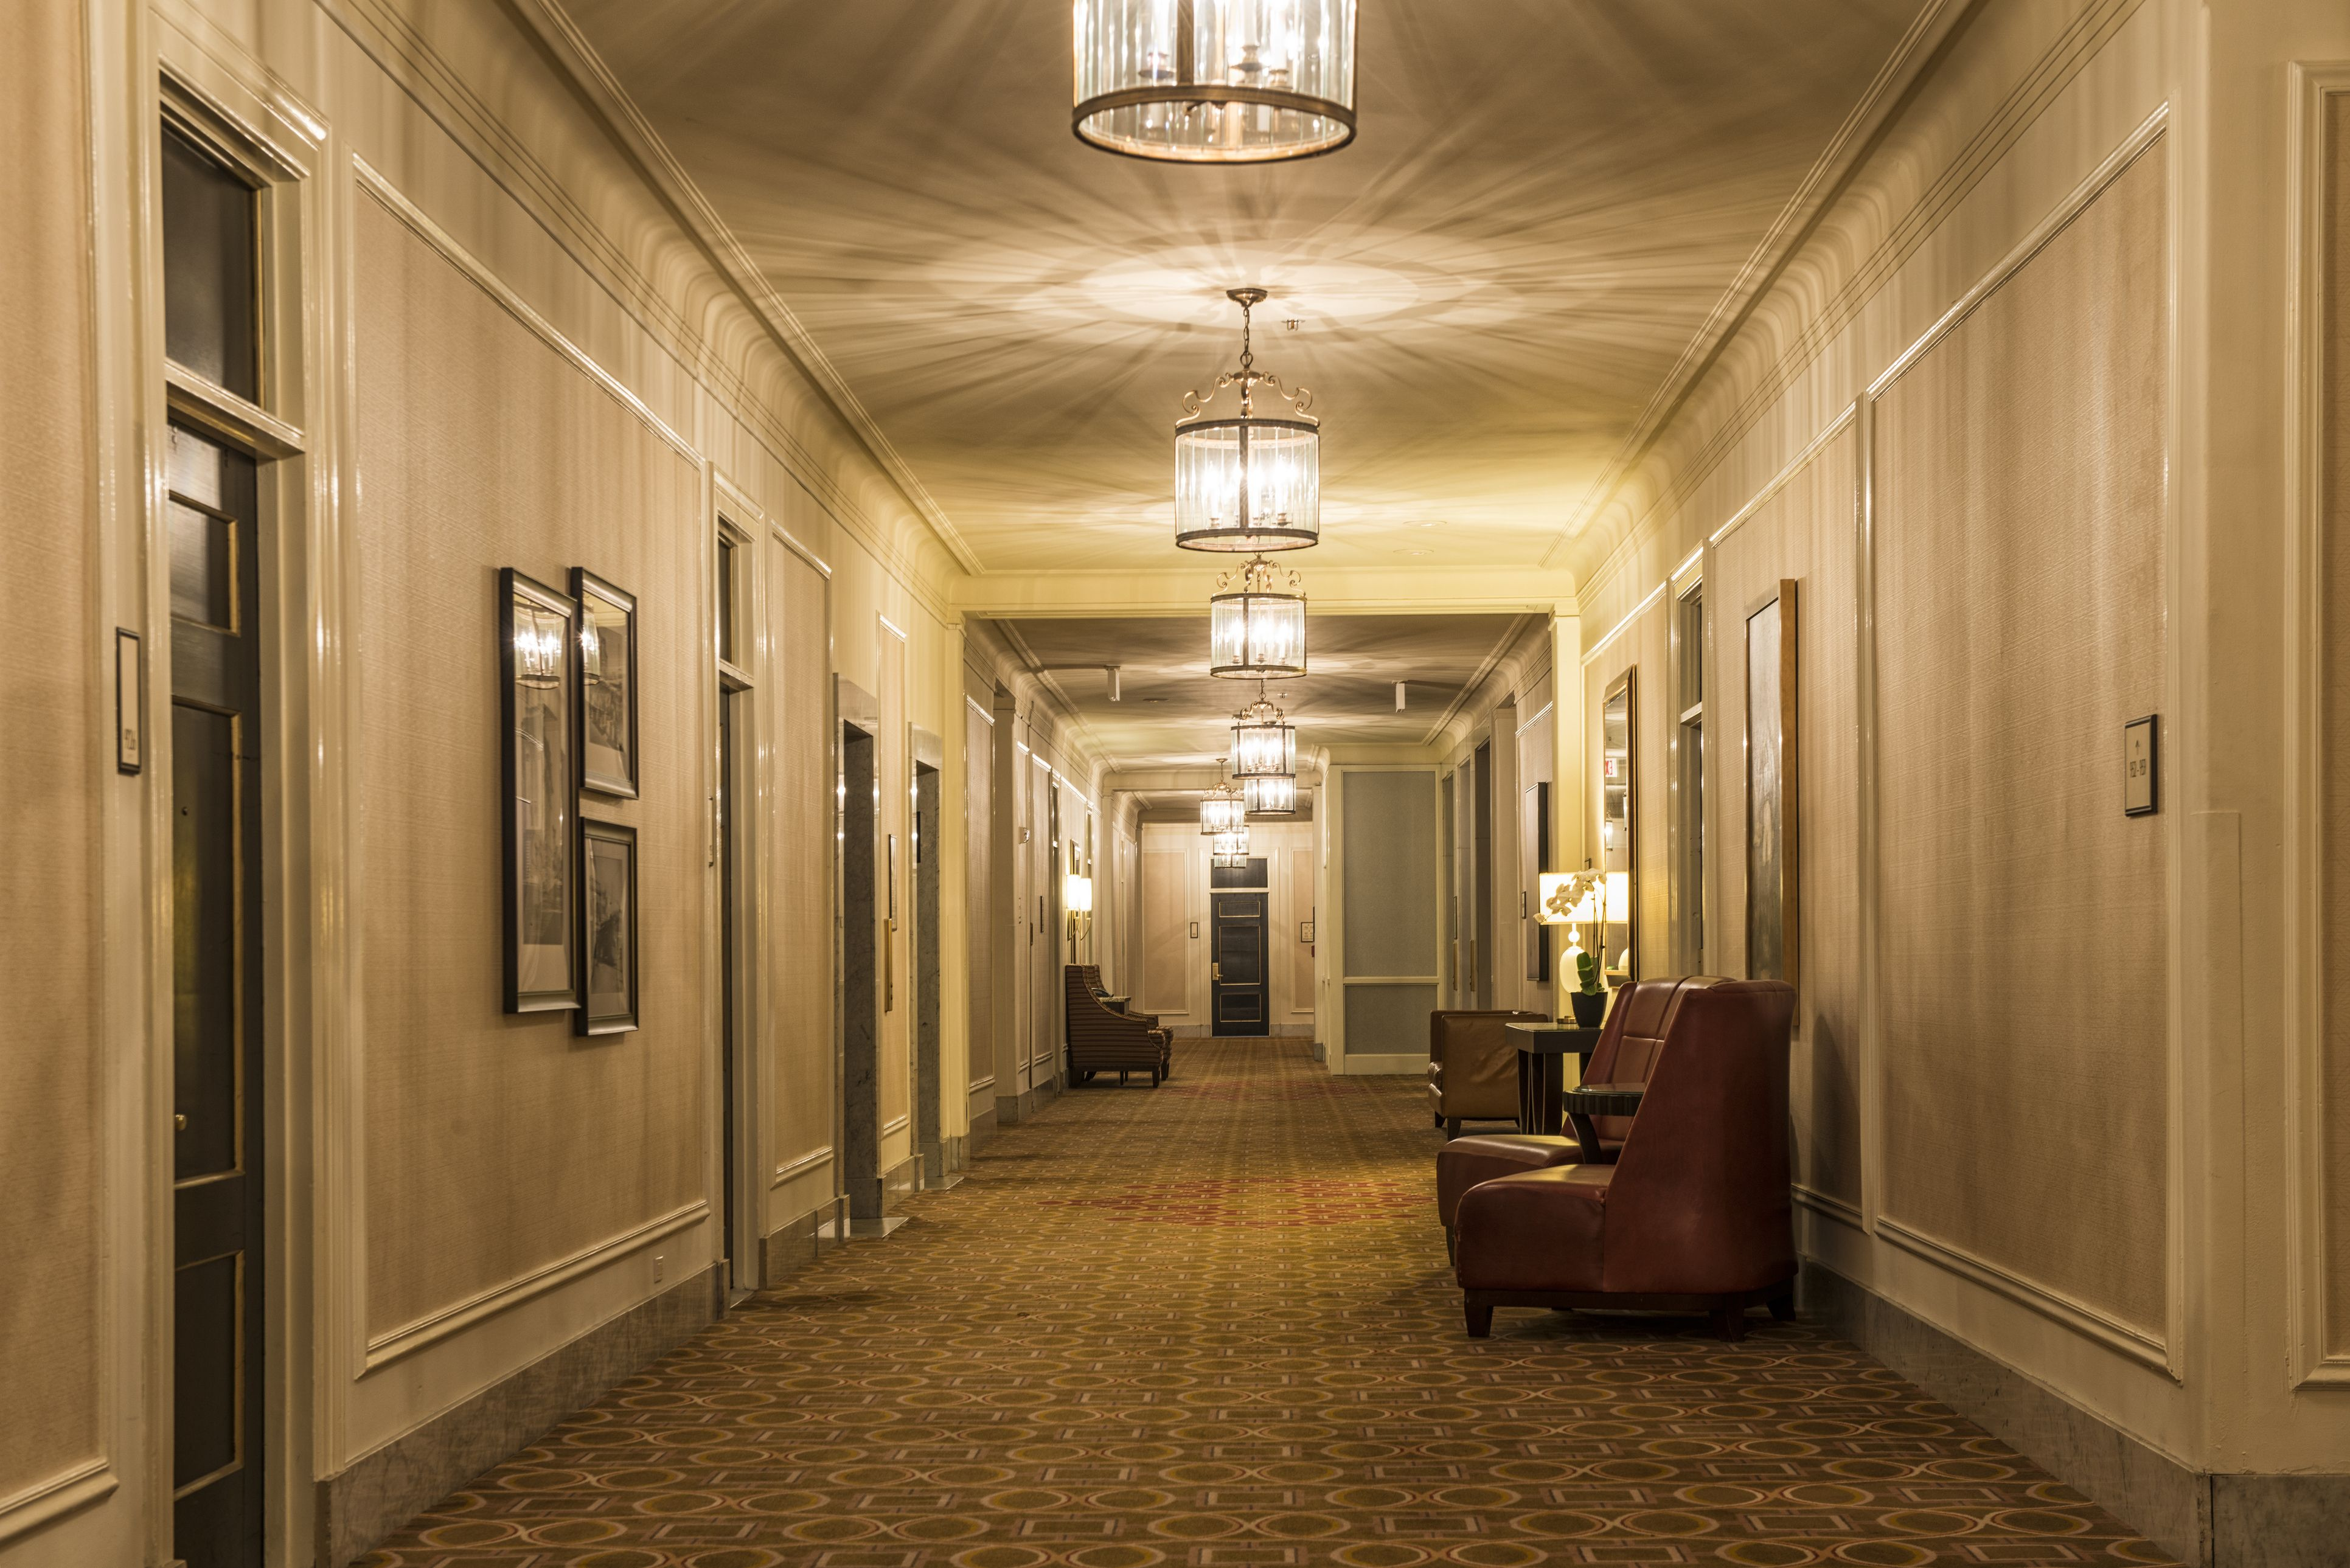 10 Most Haunted Hotels In America Real Haunted Places To Visit In 2018